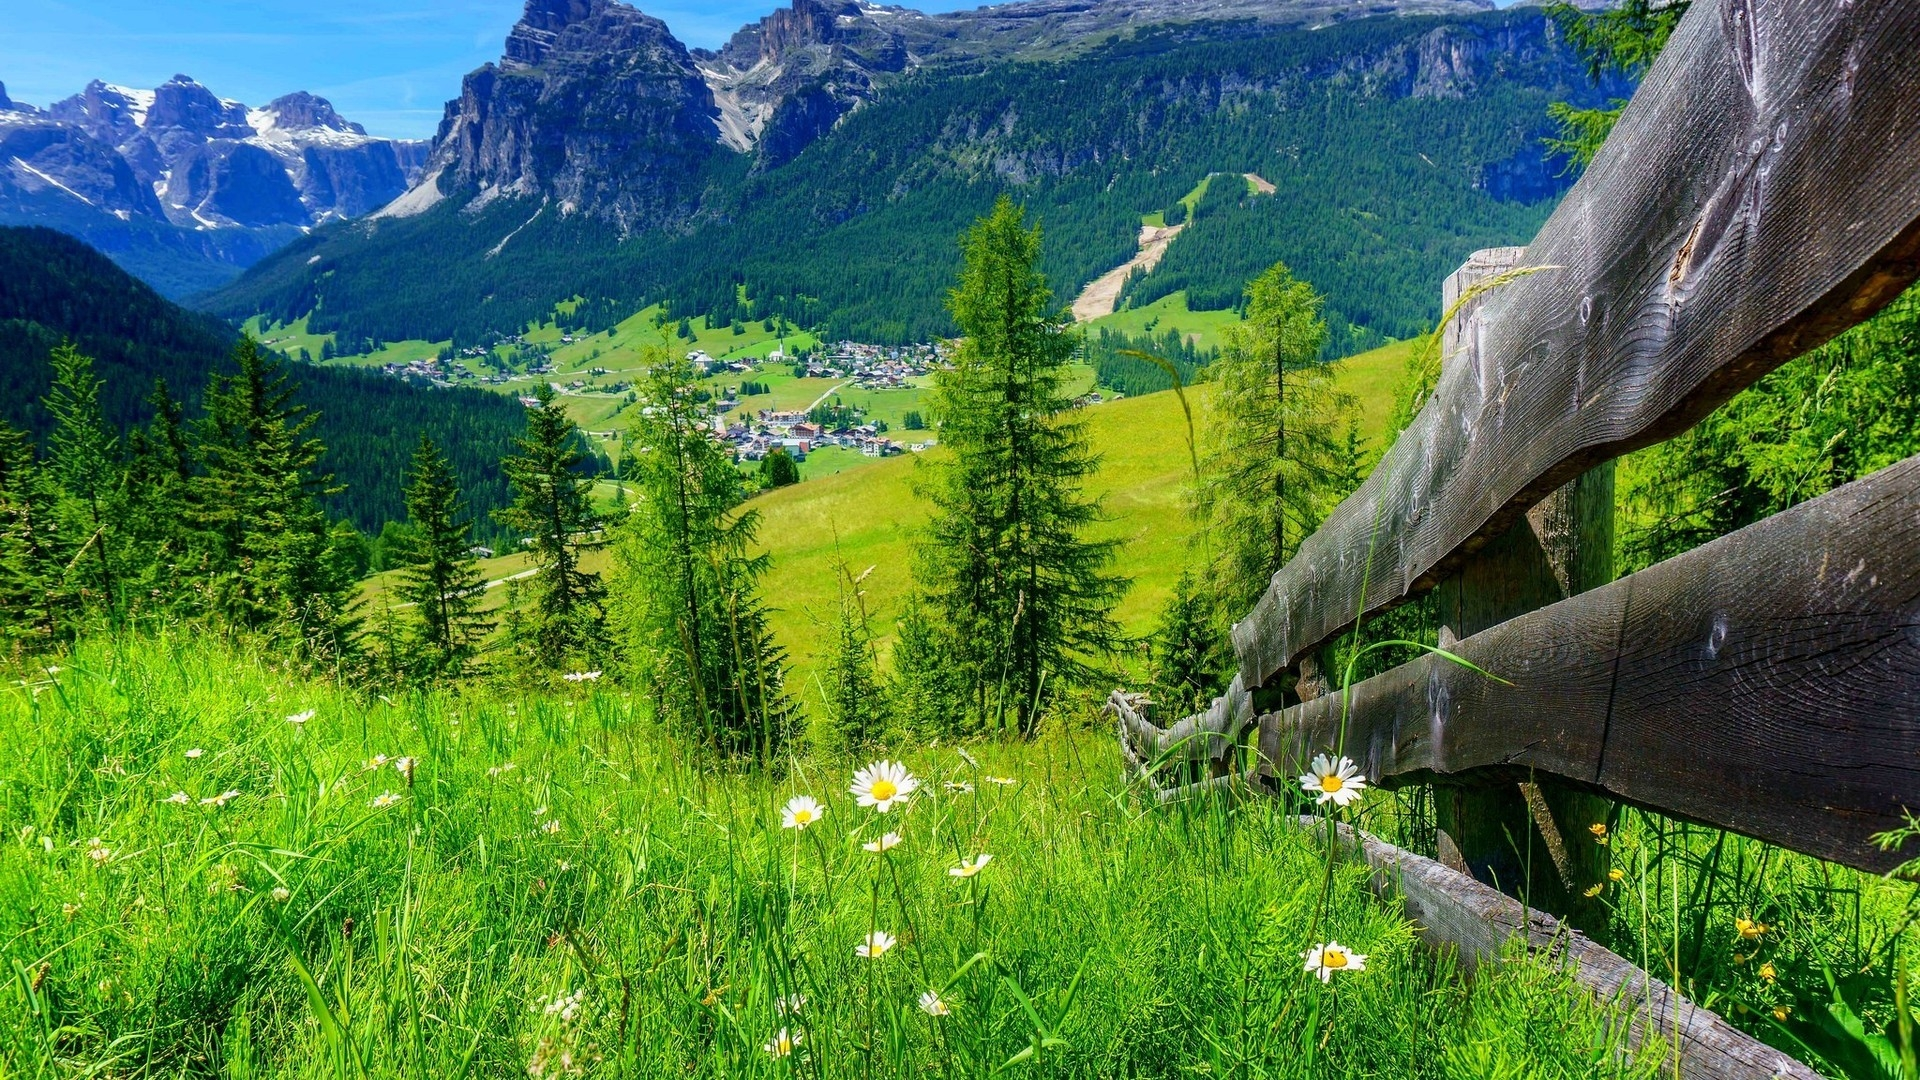 Spring Mountain Full HD Wallpaper And Background Image